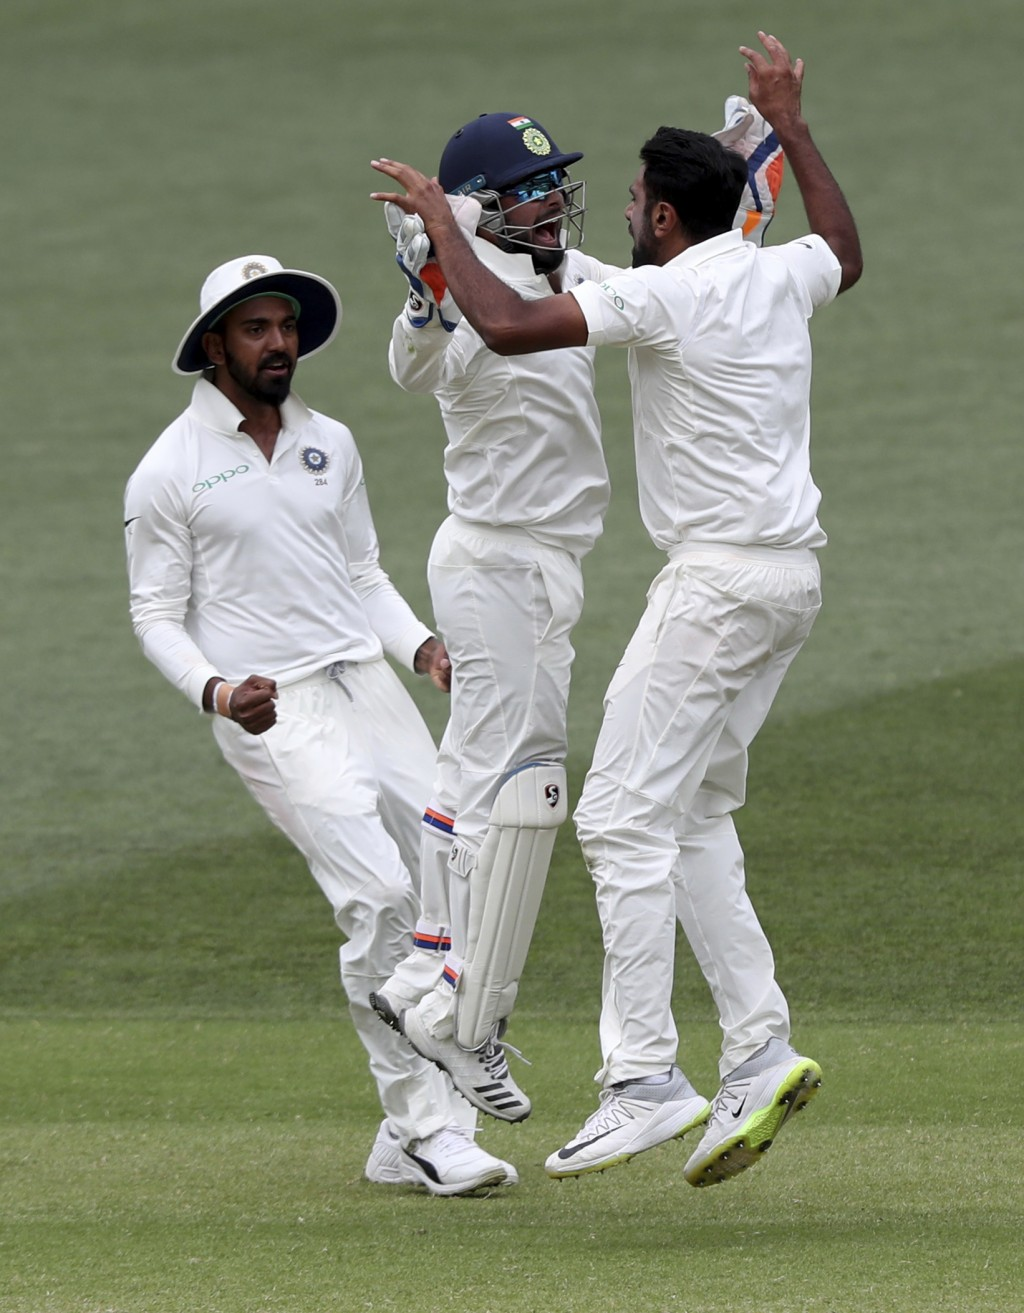 India's Ravi Ashwin, right, celebrates with teammate Rishabh Pant after taking the wicket of Australia's Josh Hazlewood to win the first cricket test